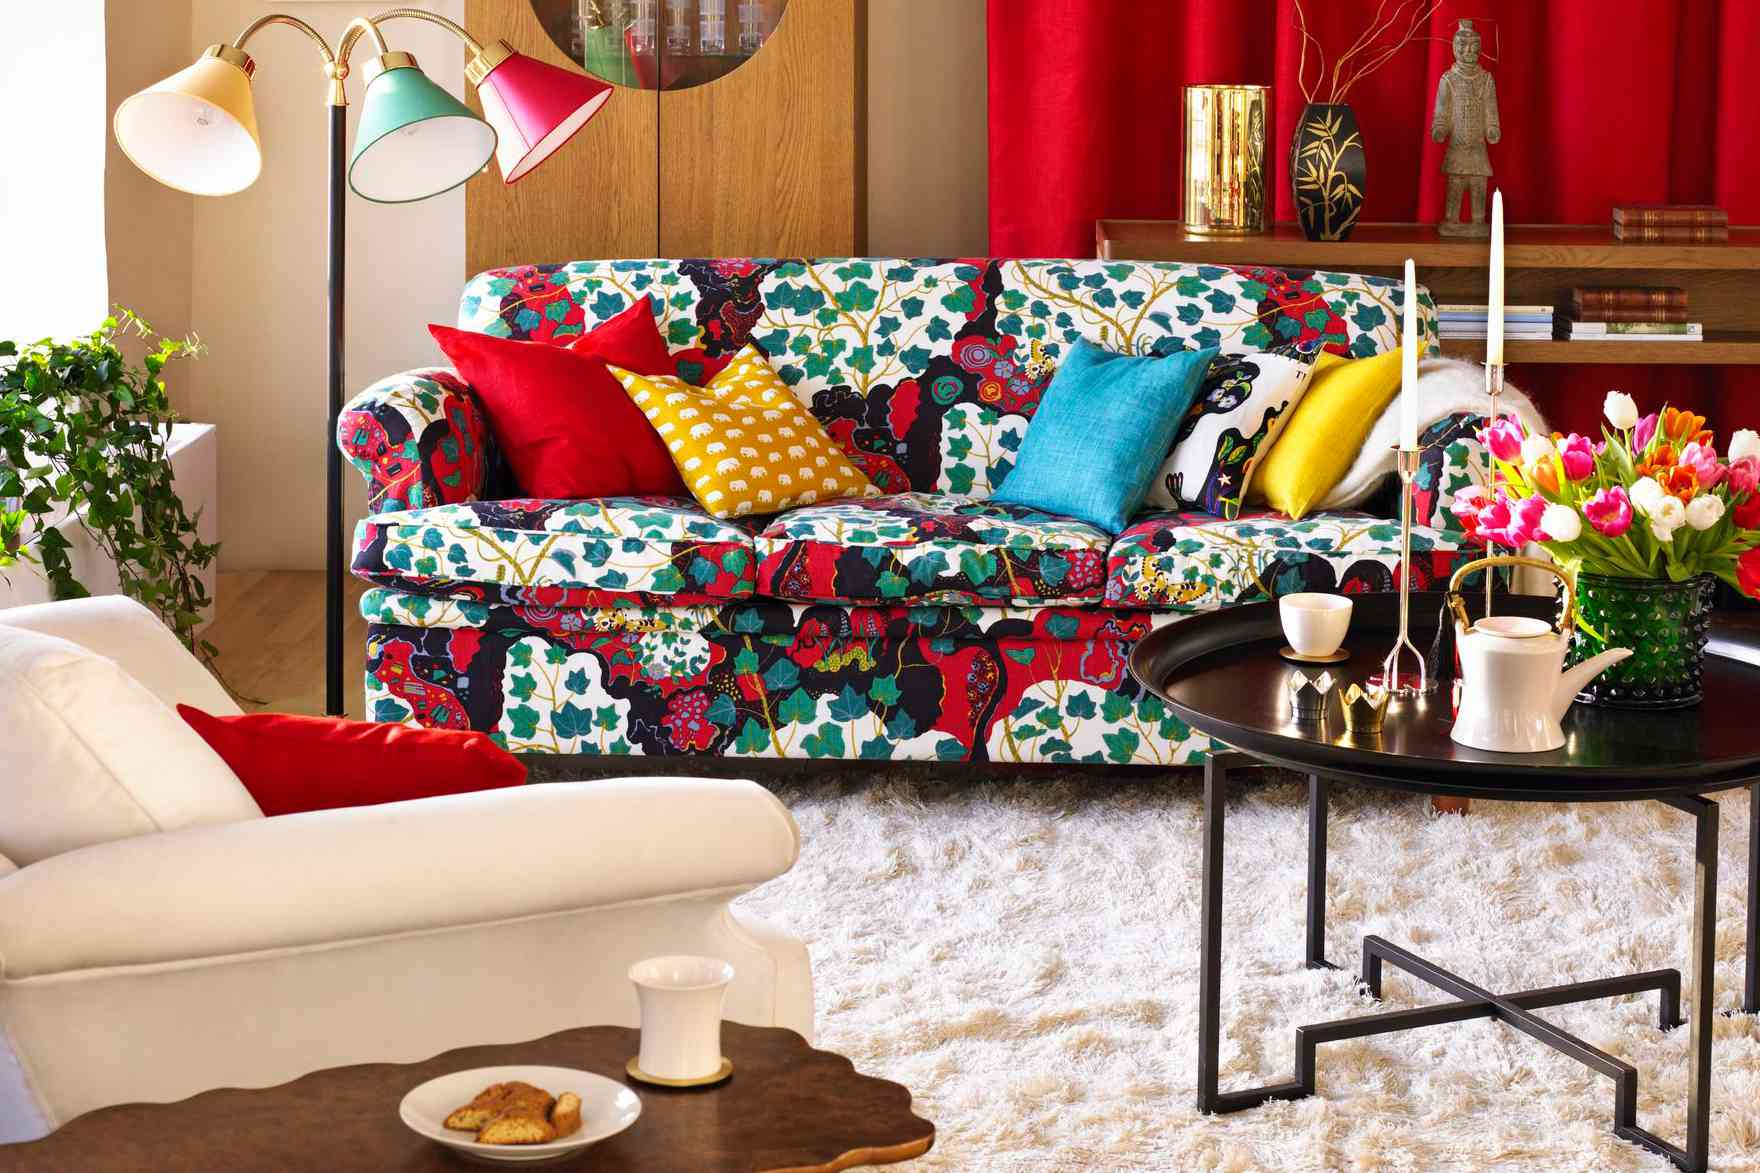 statement sofa in a living room